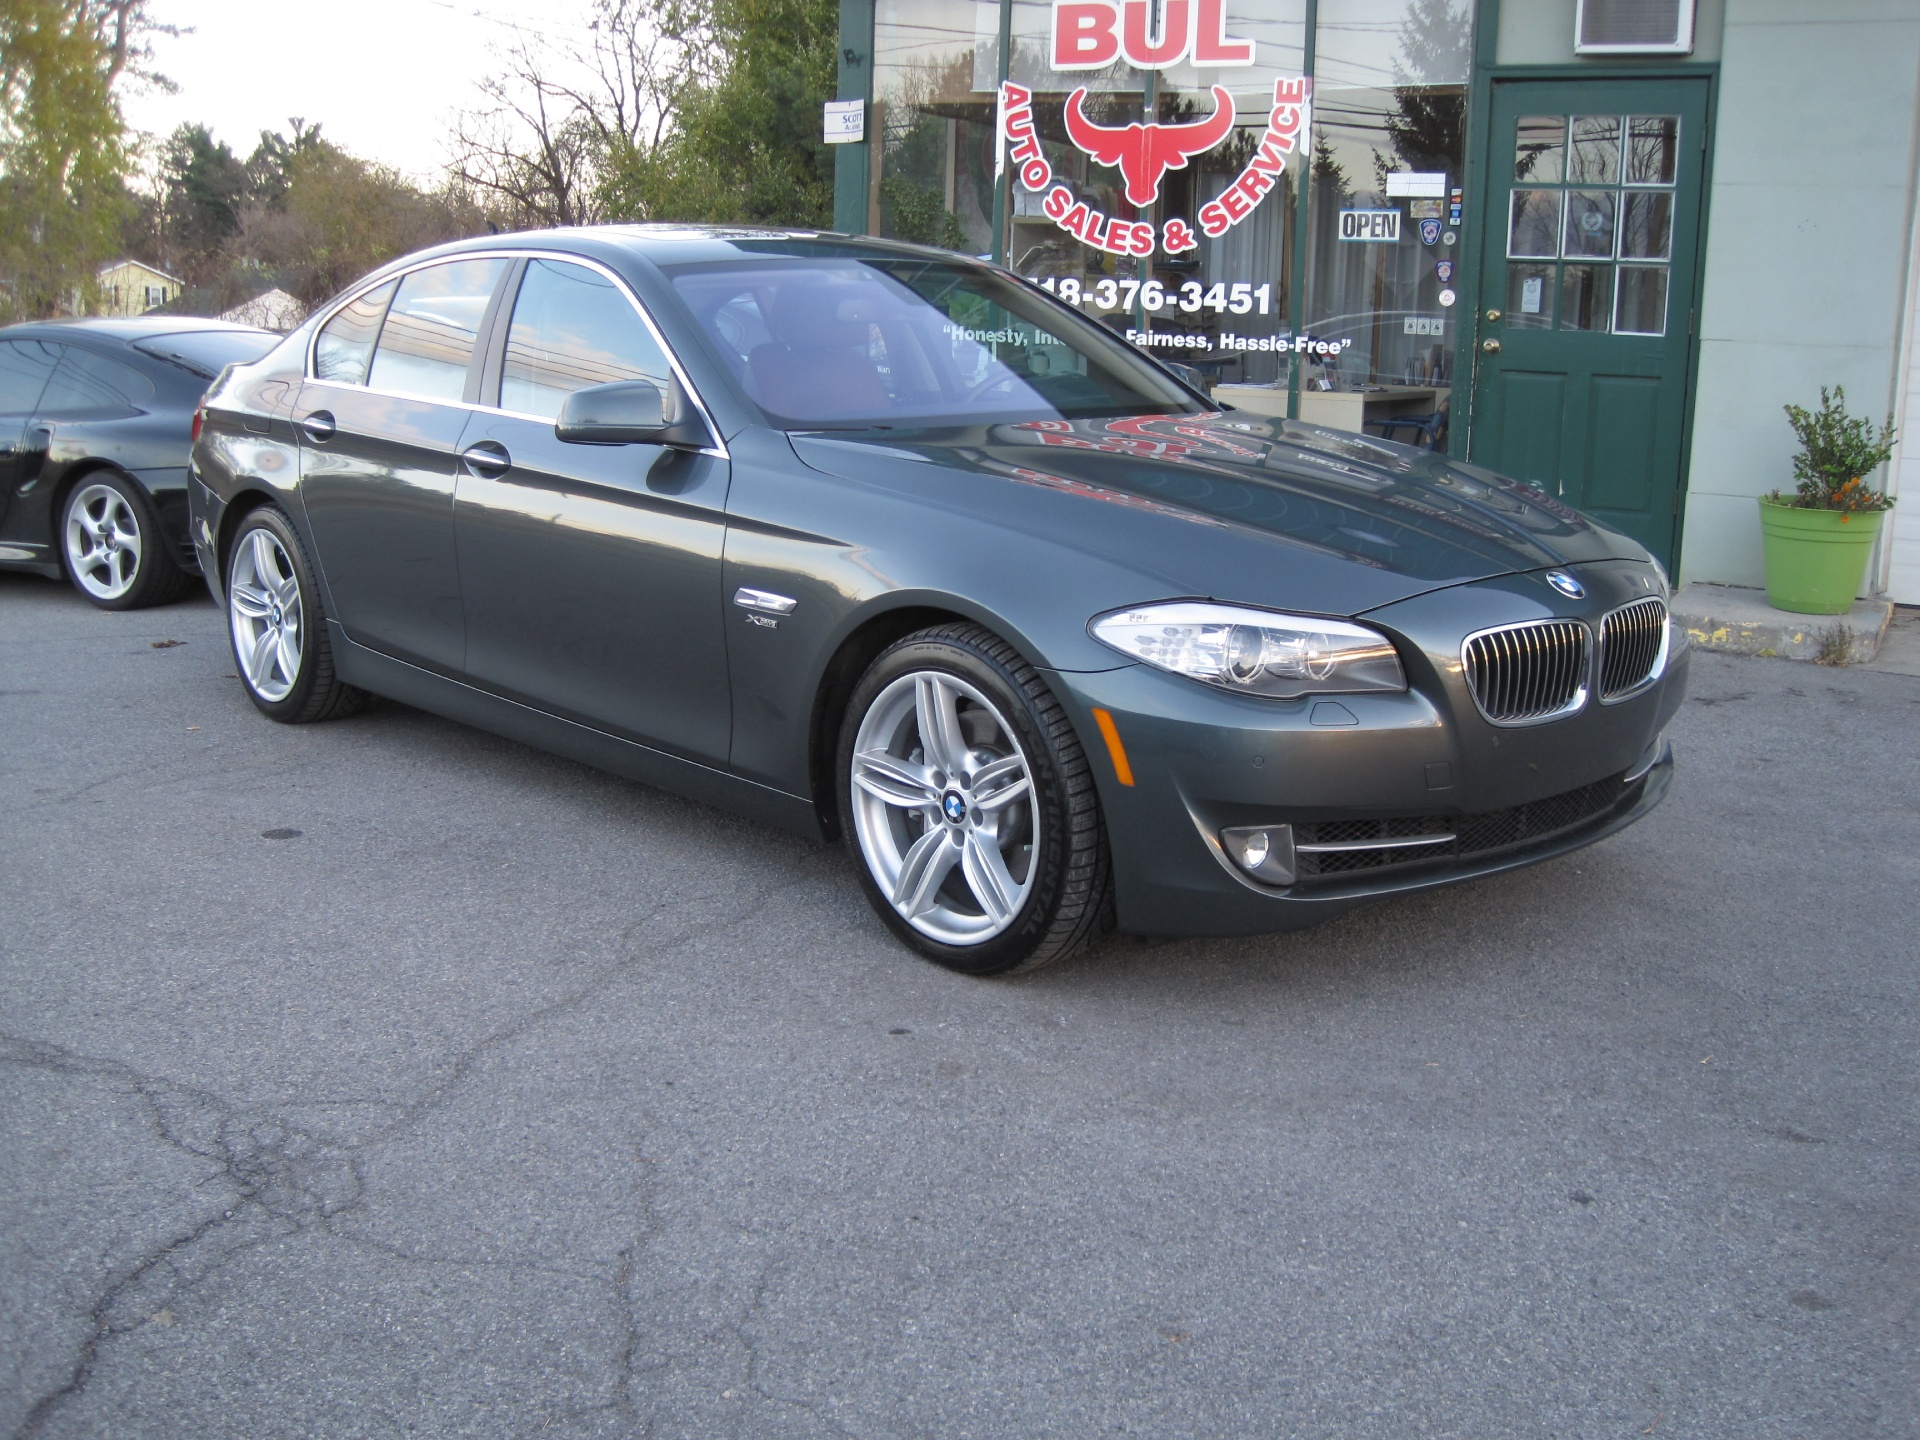 2011 bmw 5 series 535i xdrive super loaded with options prem2 cold wthr conv active vent seat. Black Bedroom Furniture Sets. Home Design Ideas